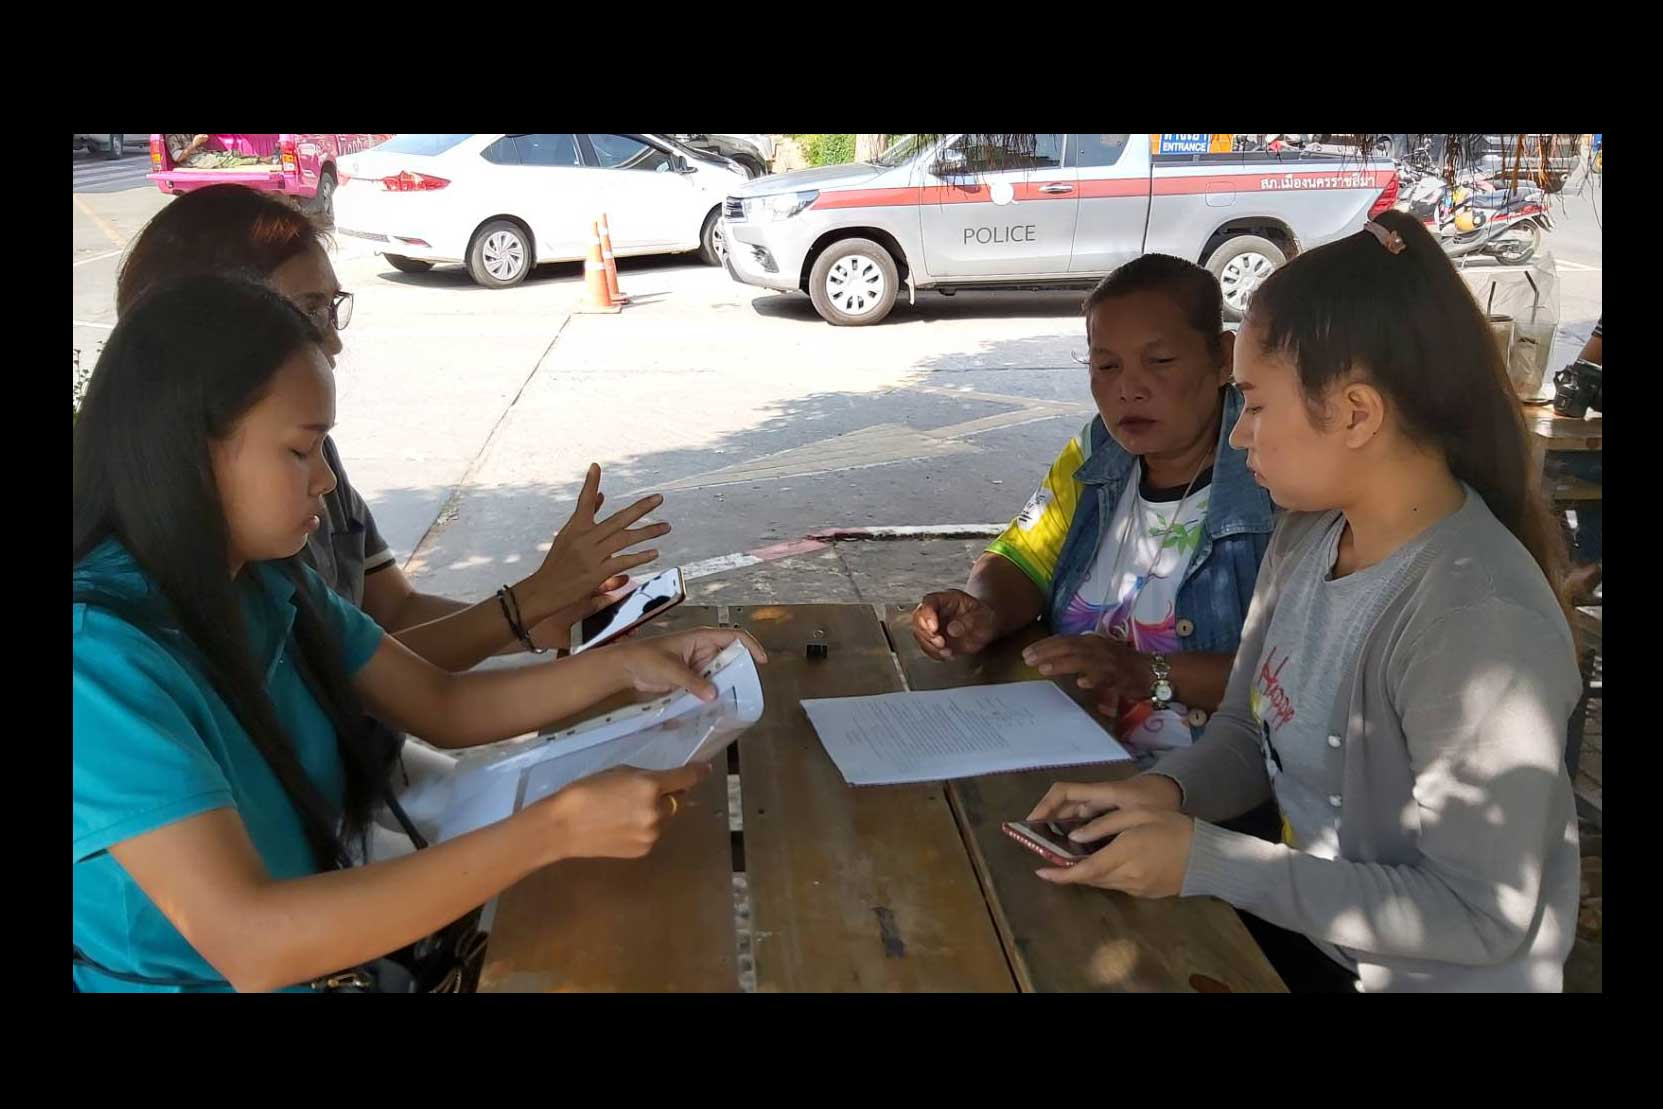 Pitchaya Kaesungnoen, 19, left, and Meena Sapsarp, 25, talk to reporters in Nakhon Ratchasima after filing their extortion complaint with Muang police against people claiming to be copyright agents. (Photo by Prasit Tangprasert)